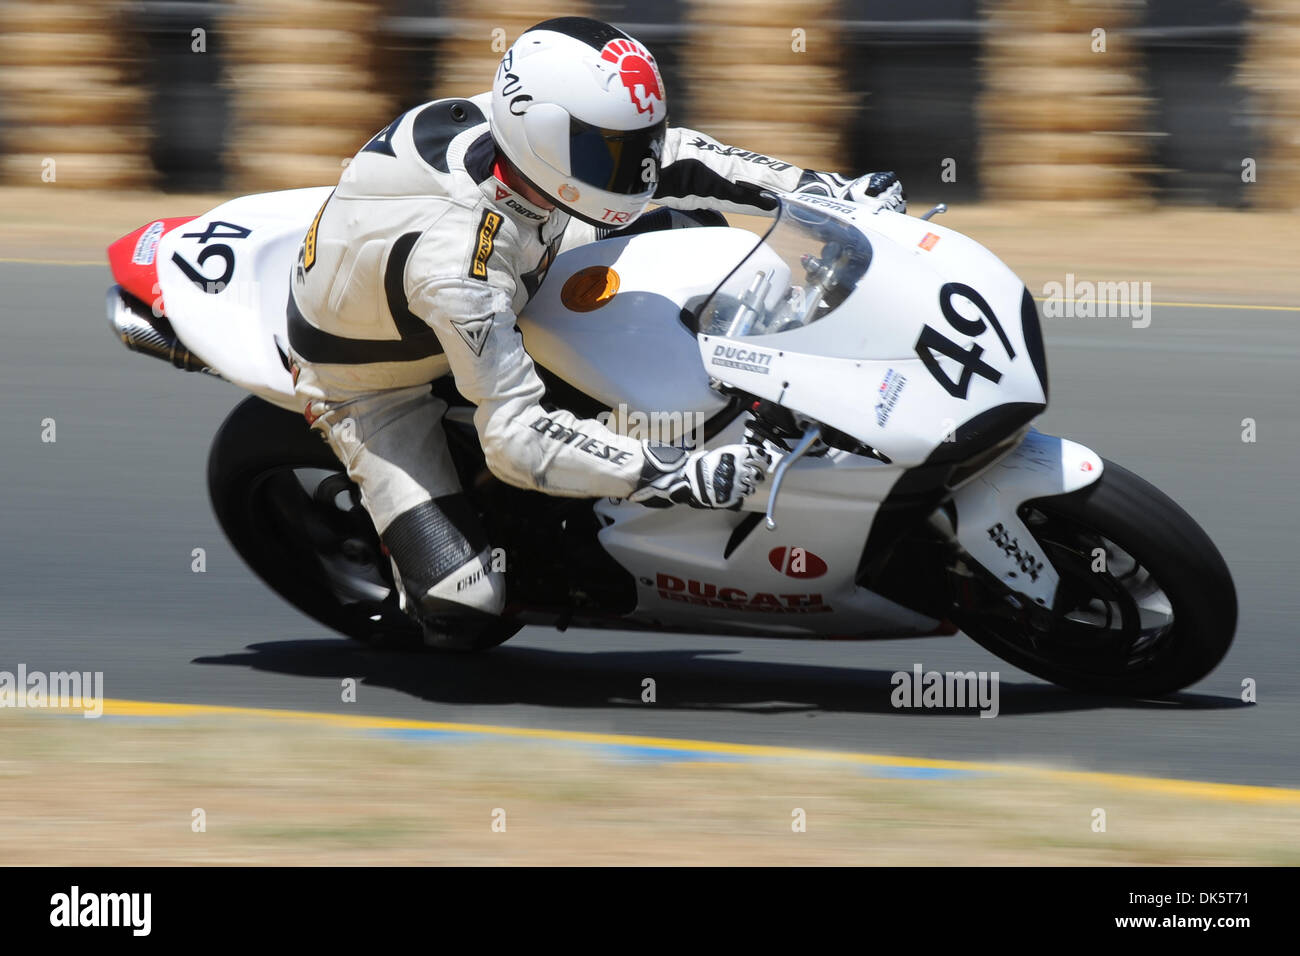 May 13, 2011 - Sonoma, California, United States of America - Howard Crow (49) rides a Ducati 848 during AMA Pro SuperSport practice at the West Coast Moto Jam at Infineon Raceway. (Credit Image: © Matt Cohen/Southcreek Global/ZUMAPRESS.com) - Stock Image